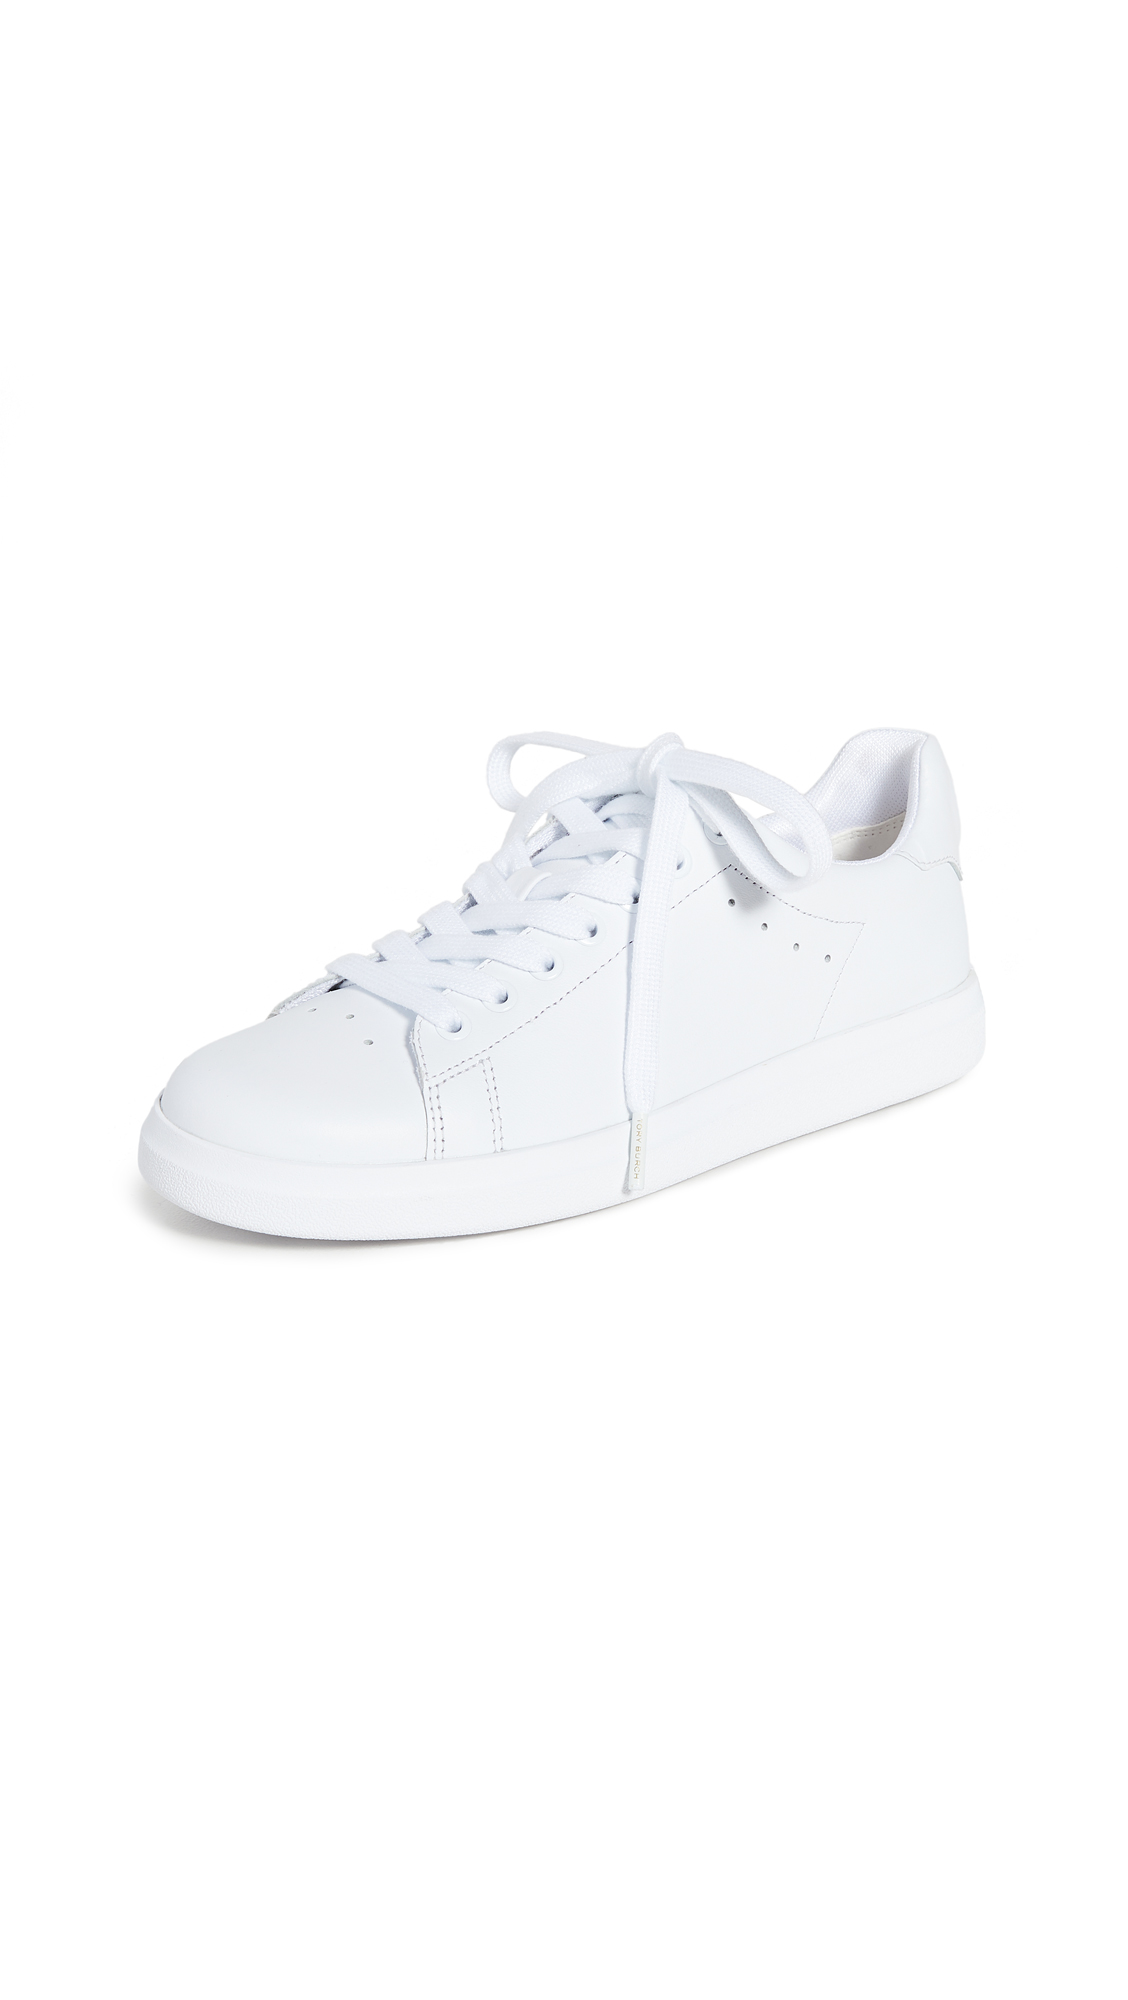 Buy Tory Burch Howell Court Sneakers online, shop Tory Burch